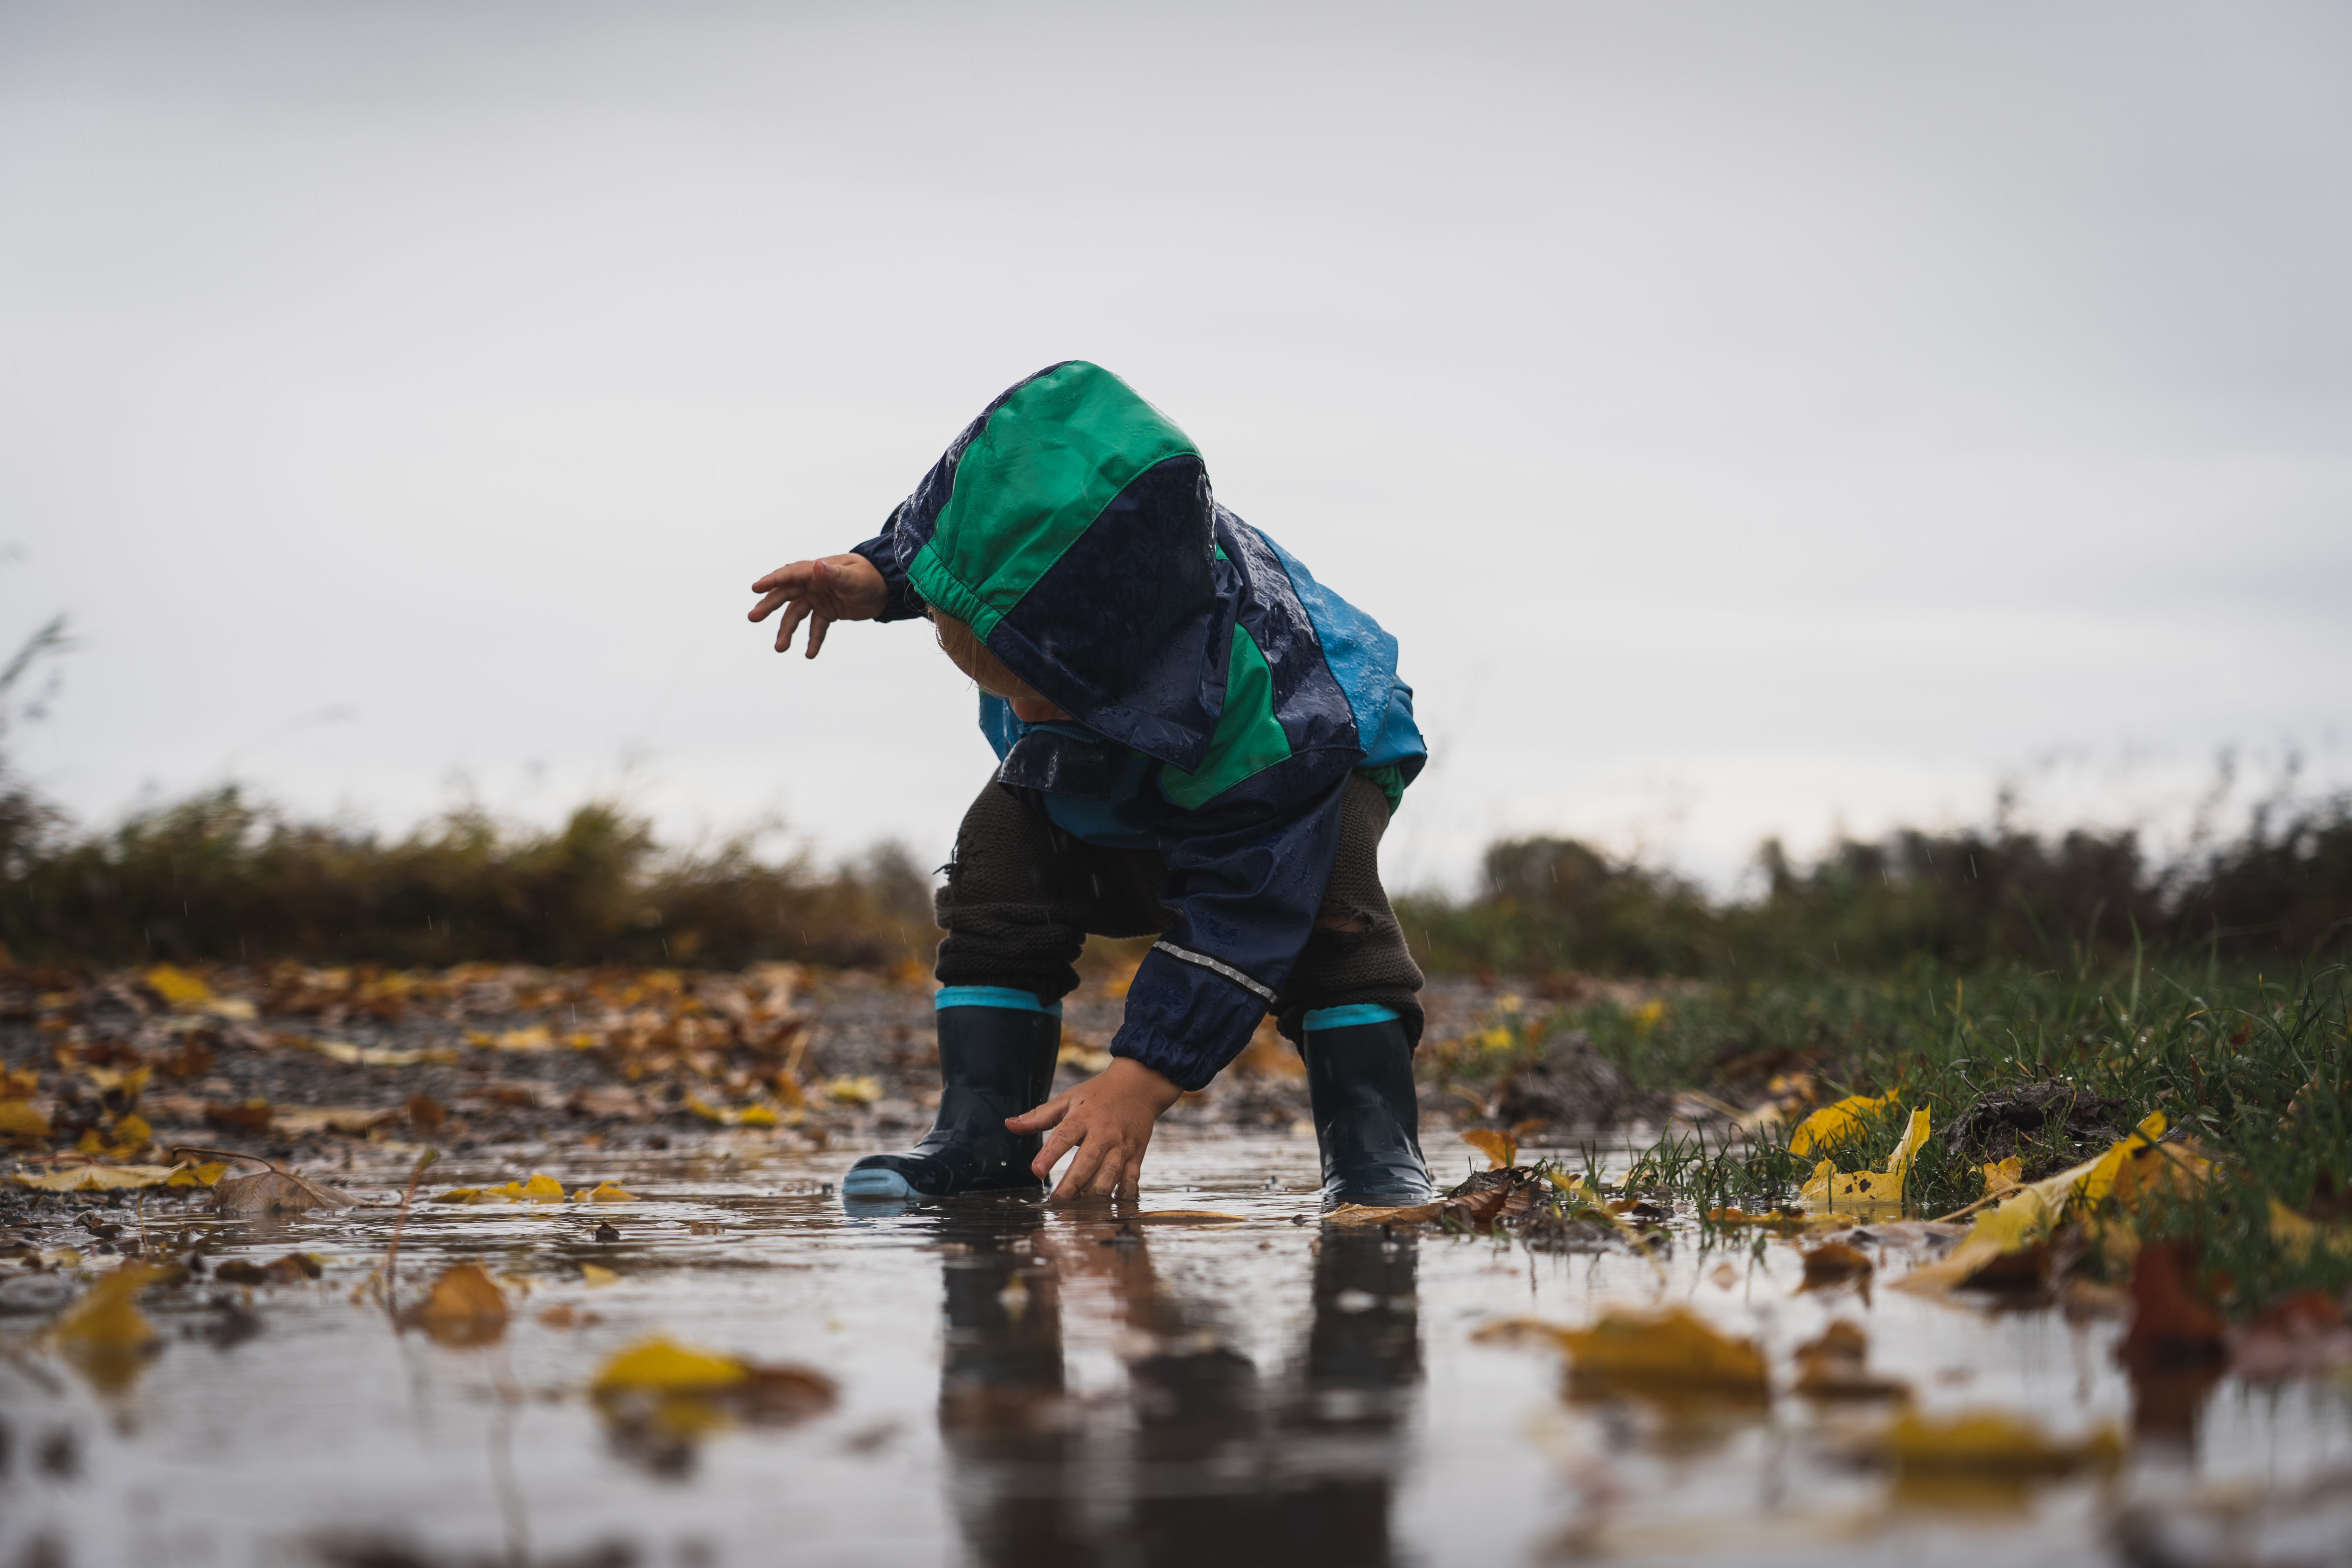 Cute little child playing in a puddle during rain